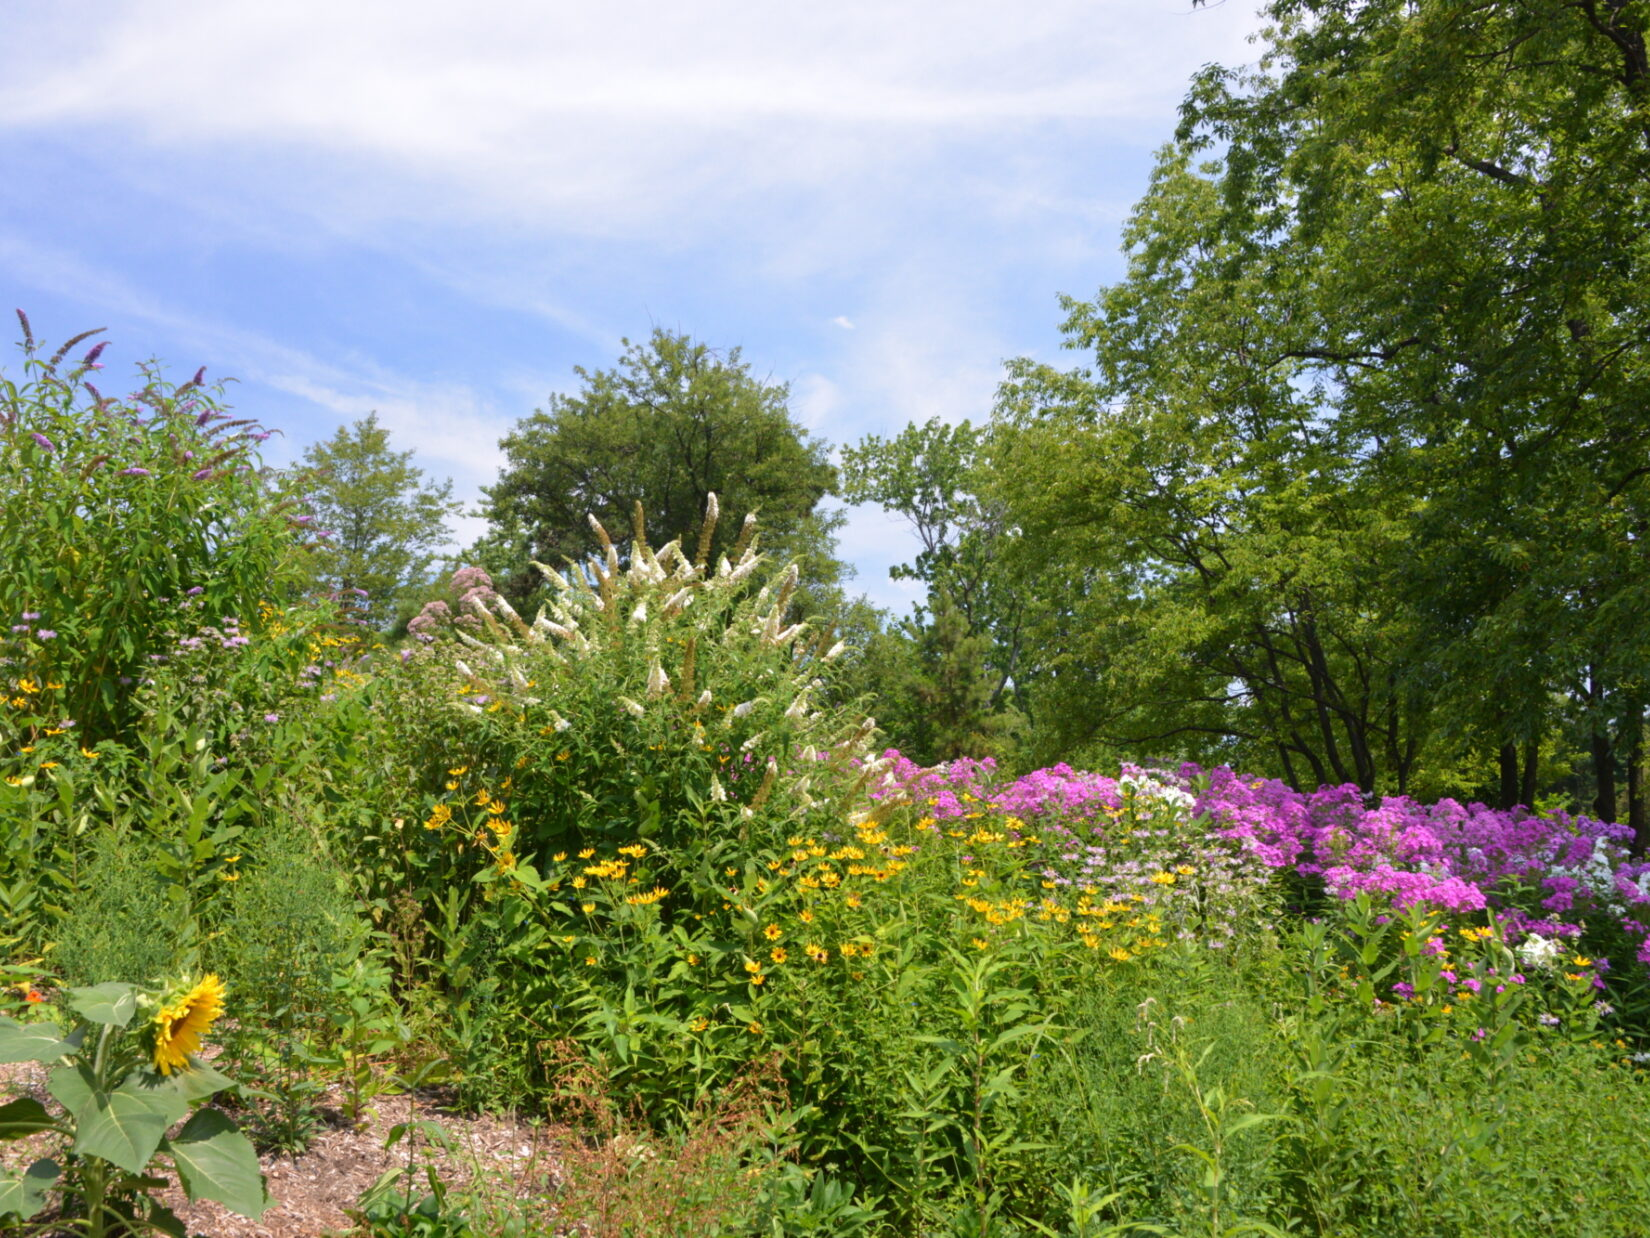 A view of the Butterfly Gardens with colorful blooms under a blue sky.